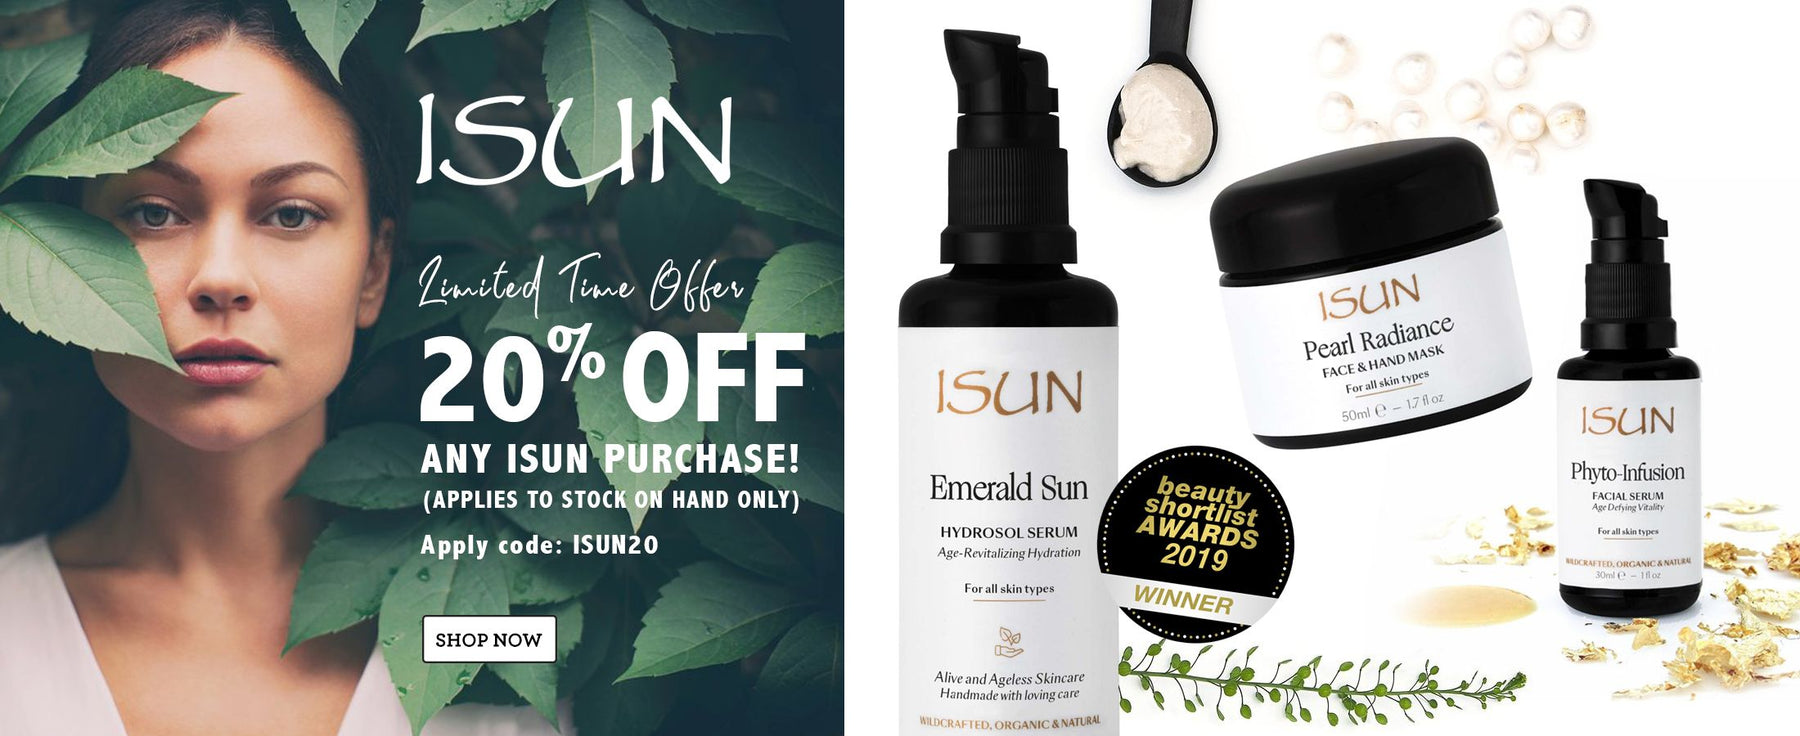 ISUN Limited Time Offer, SHOP NOW. 20 % Off ANY ISUN purchase! Applies to stock on hand only. Apply code: ISUN20